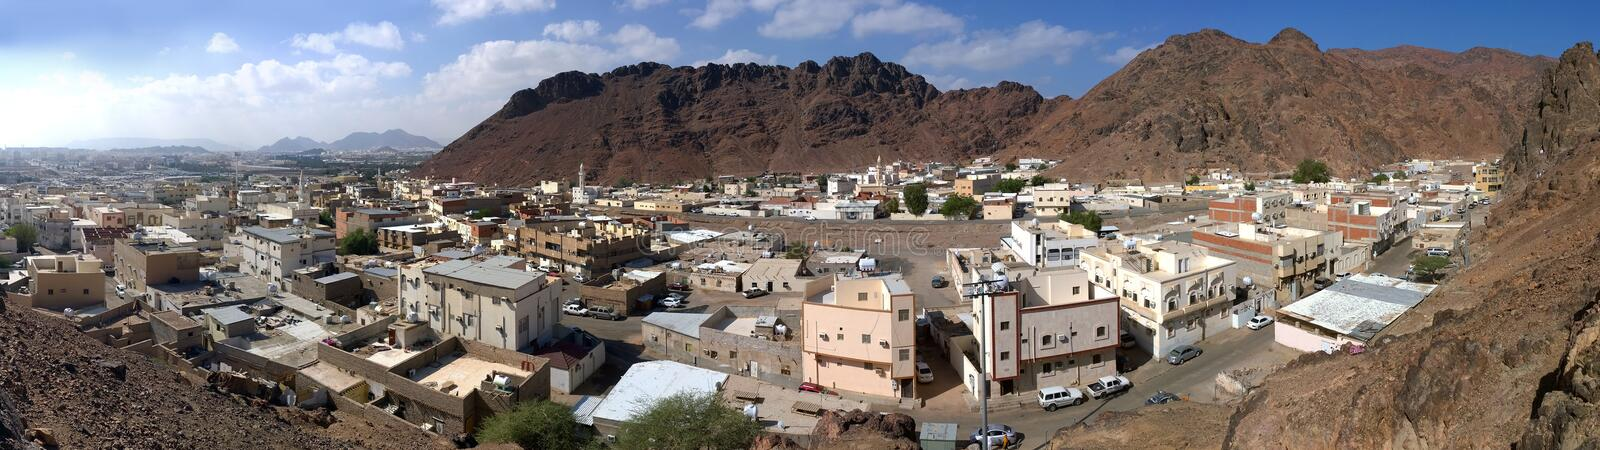 Panoroma view of old part of Medina royalty free stock images